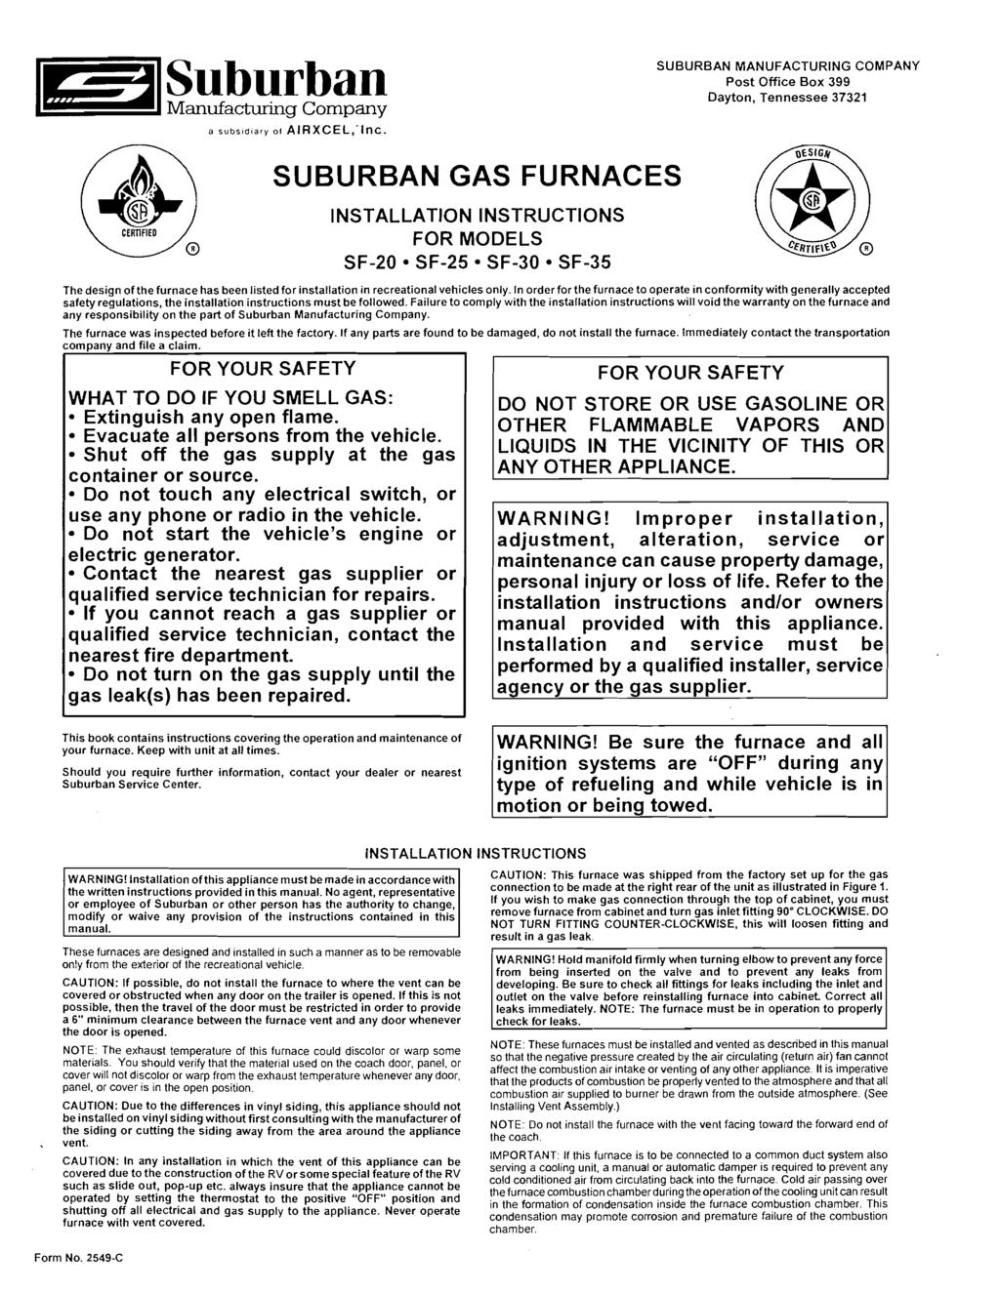 medium resolution of suburban manufacturing company post office box 399 dayton tennessee 37321 certified suburban gas furnaces installation